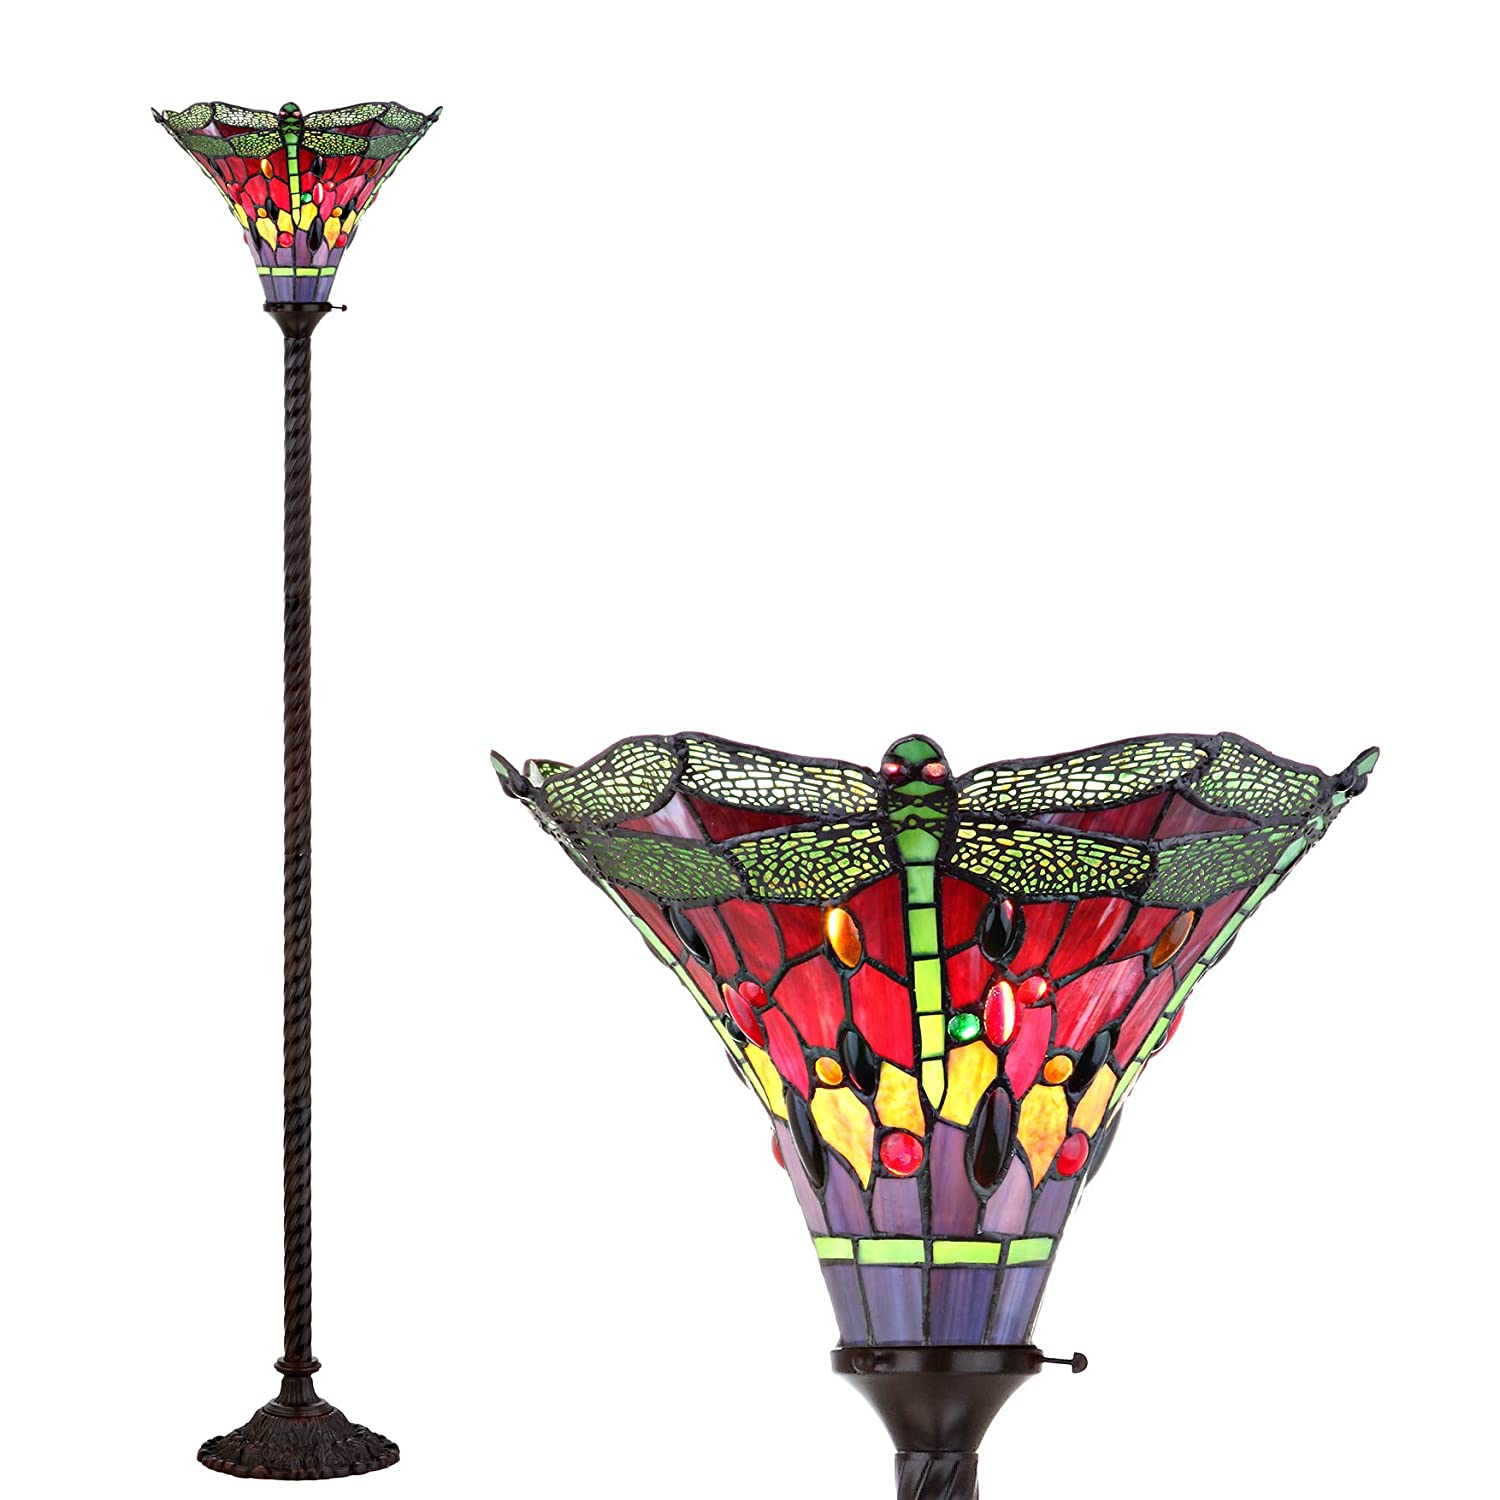 JONATHAN Y JYL8002B Dragonfly Tiffany 71 Torchiere Floor Lamp, Classic Traditional Styling, Bulb Included, Bronze Green